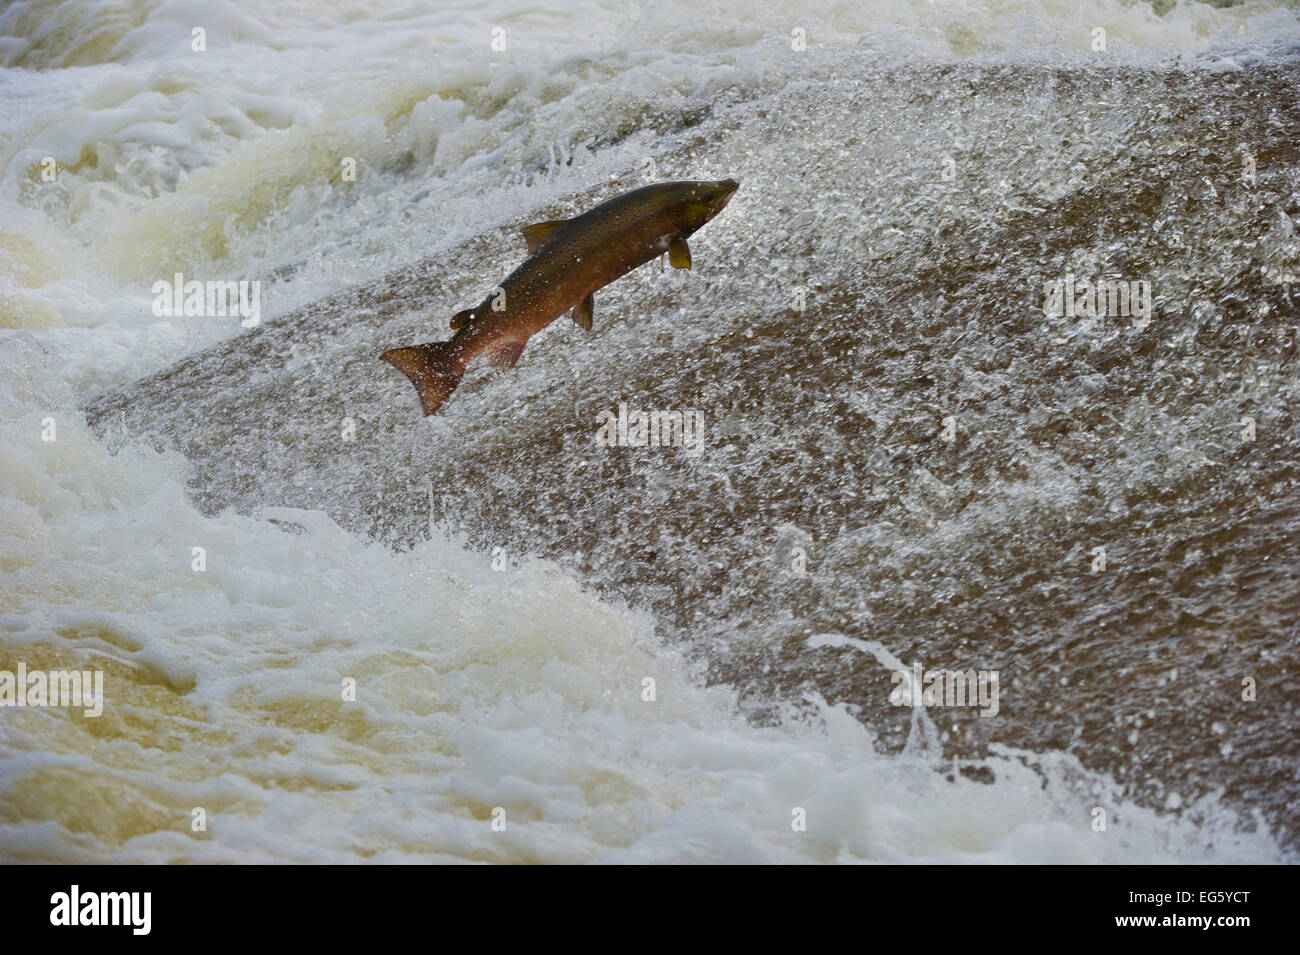 Atlantic salmon (Salmo salar) leaping up the cauld at Philphaugh Salmon Viewing Centre near Selkirk, where members - Stock Image